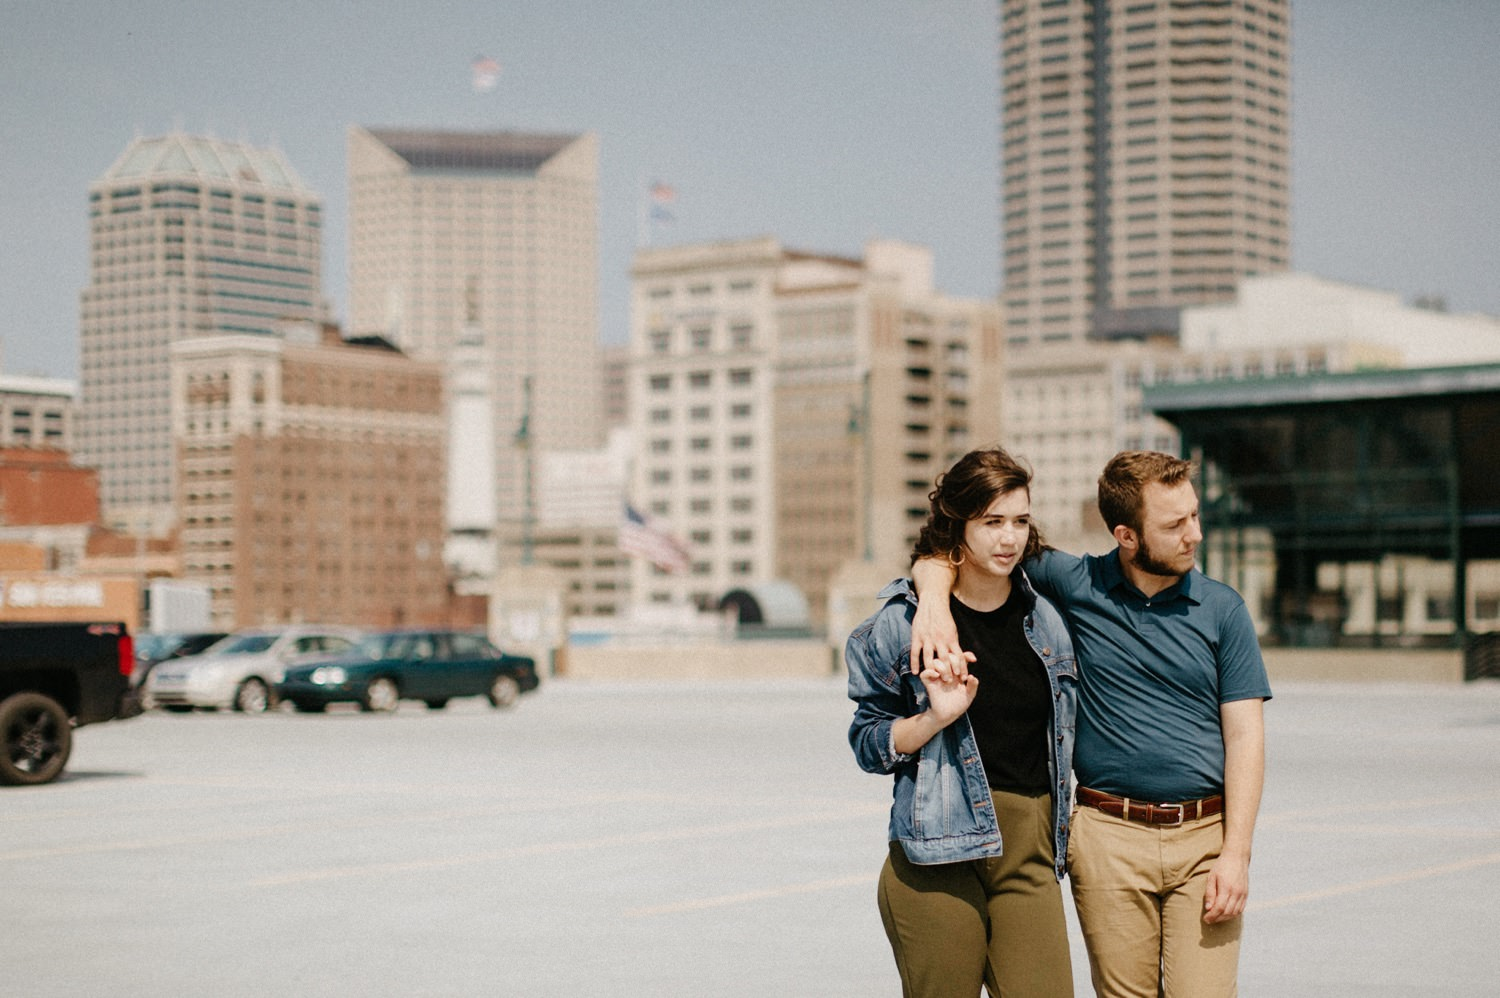 downtown-indianapolis-engagement-session-rooftop-indianapolis-engagement-photographer-kelly-marcelo-photography029.JPG